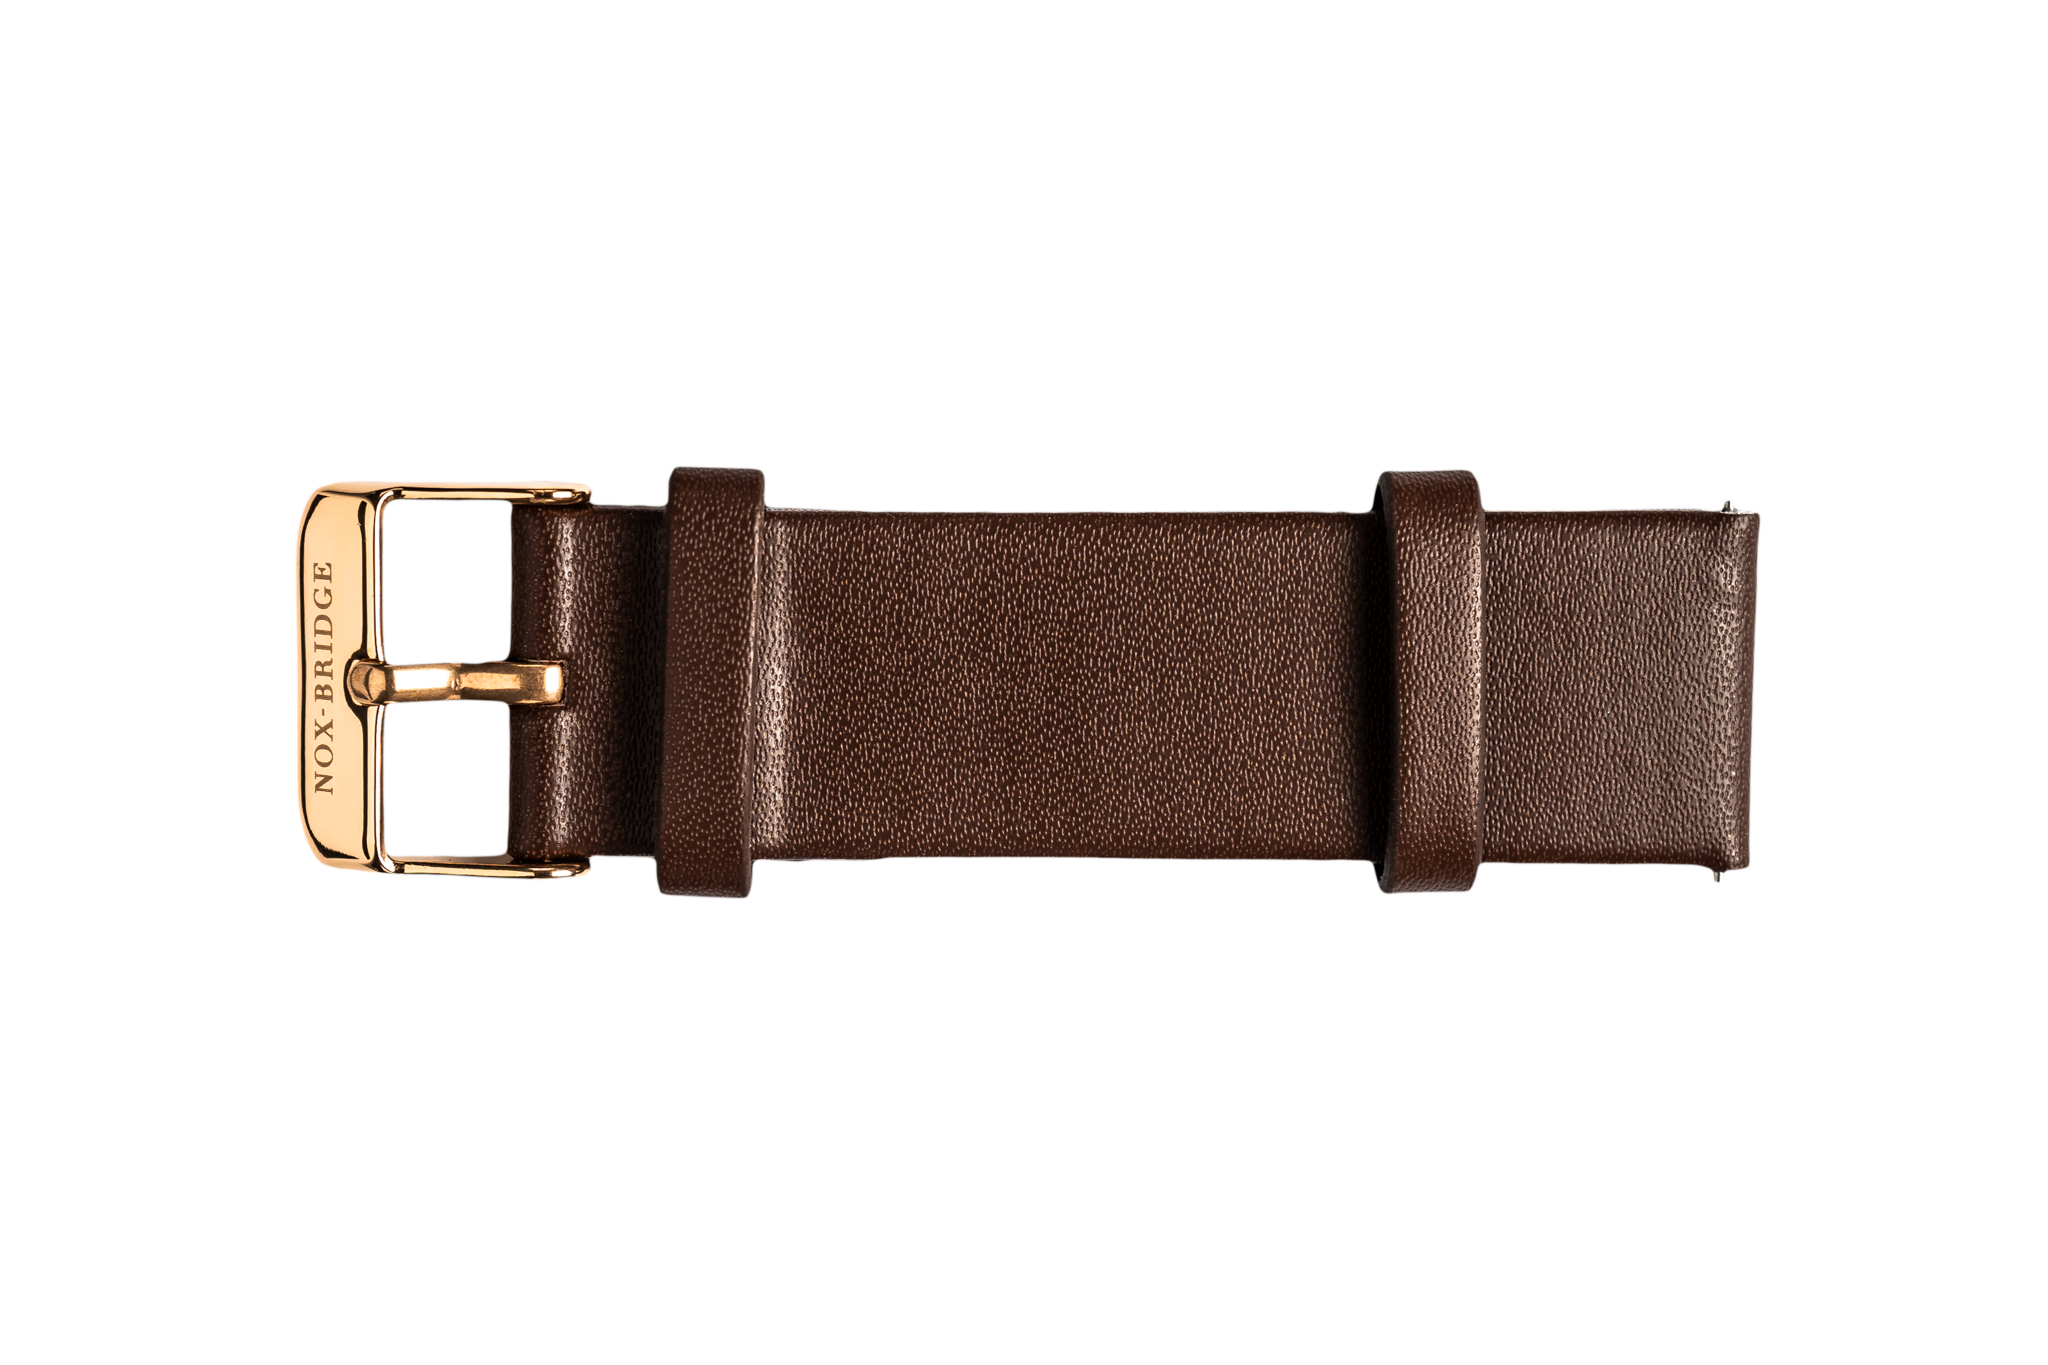 NOX-BRIDGE Eco-Friendly Recyclable Izar Brown Leather Strap